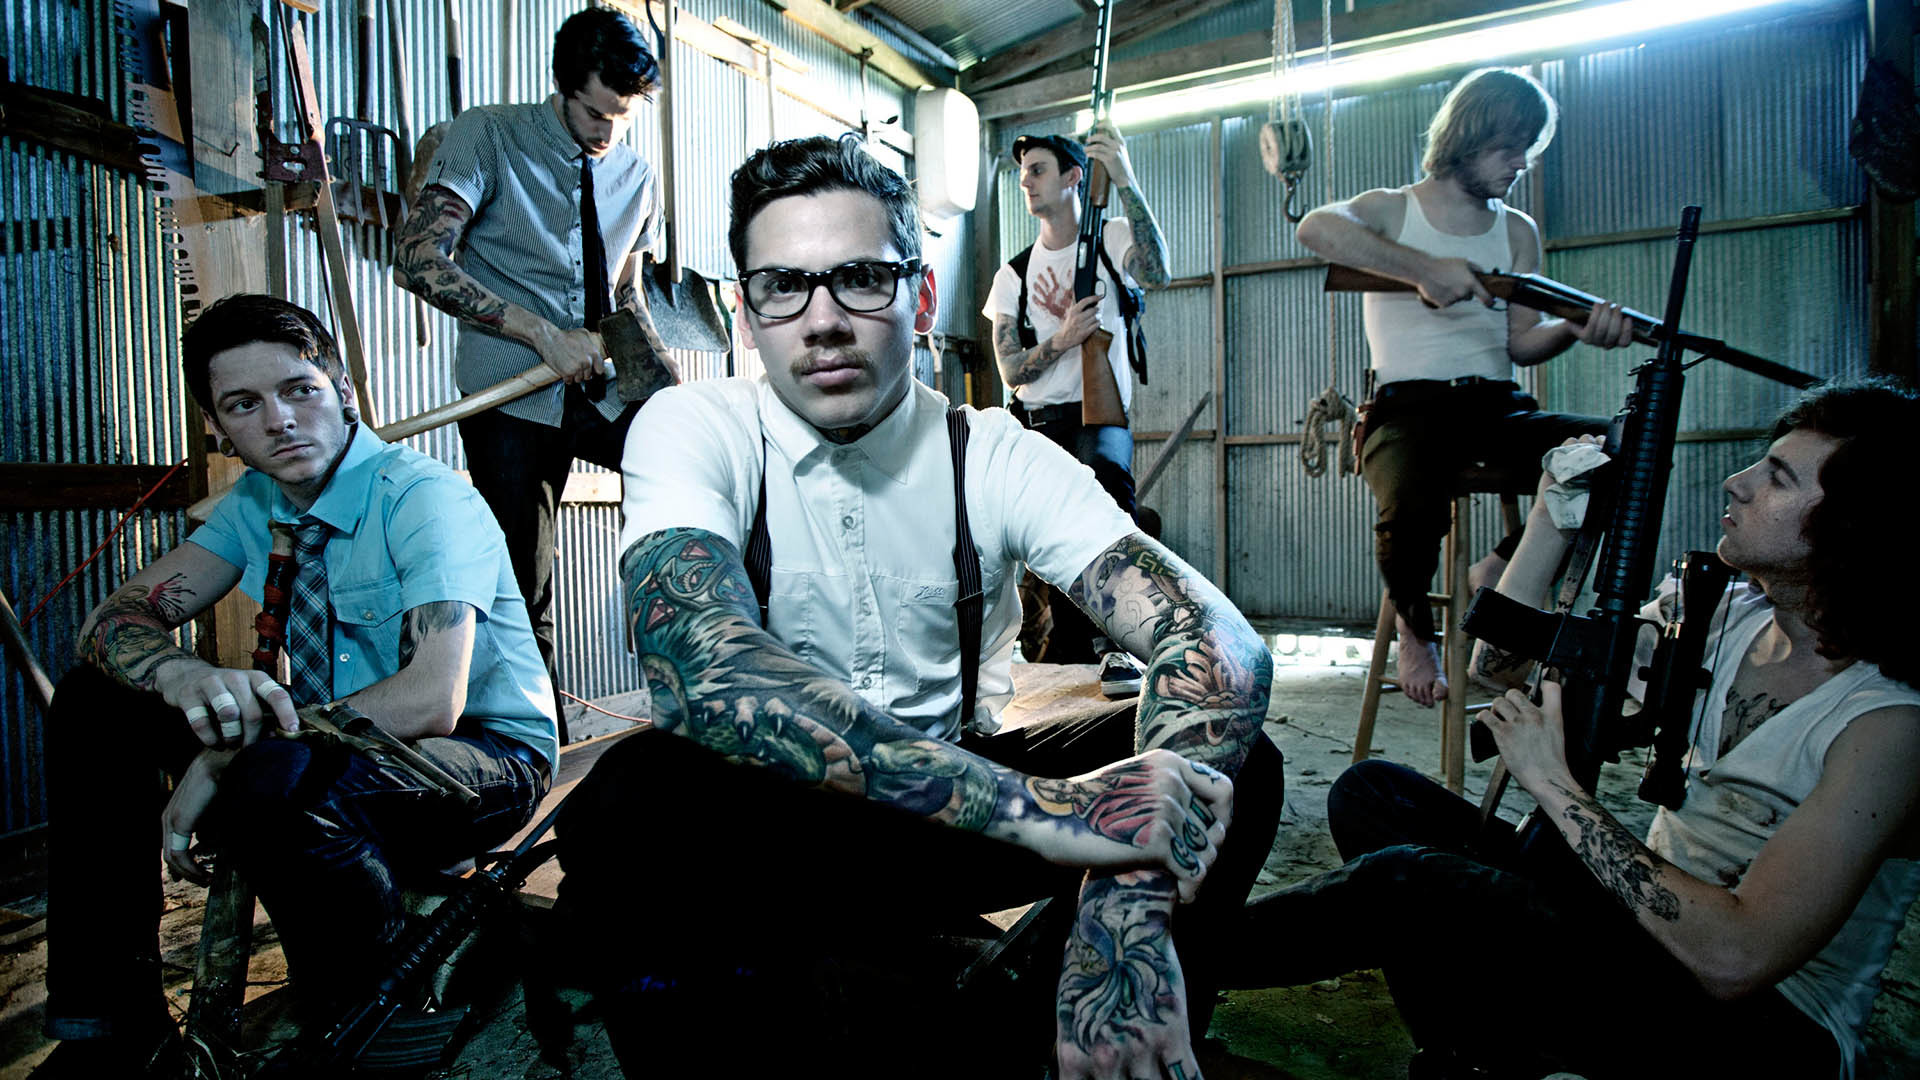 1920x1080 The Devil Wears Prada Band Wallpapers Wallpapers) – HD Wallpapers